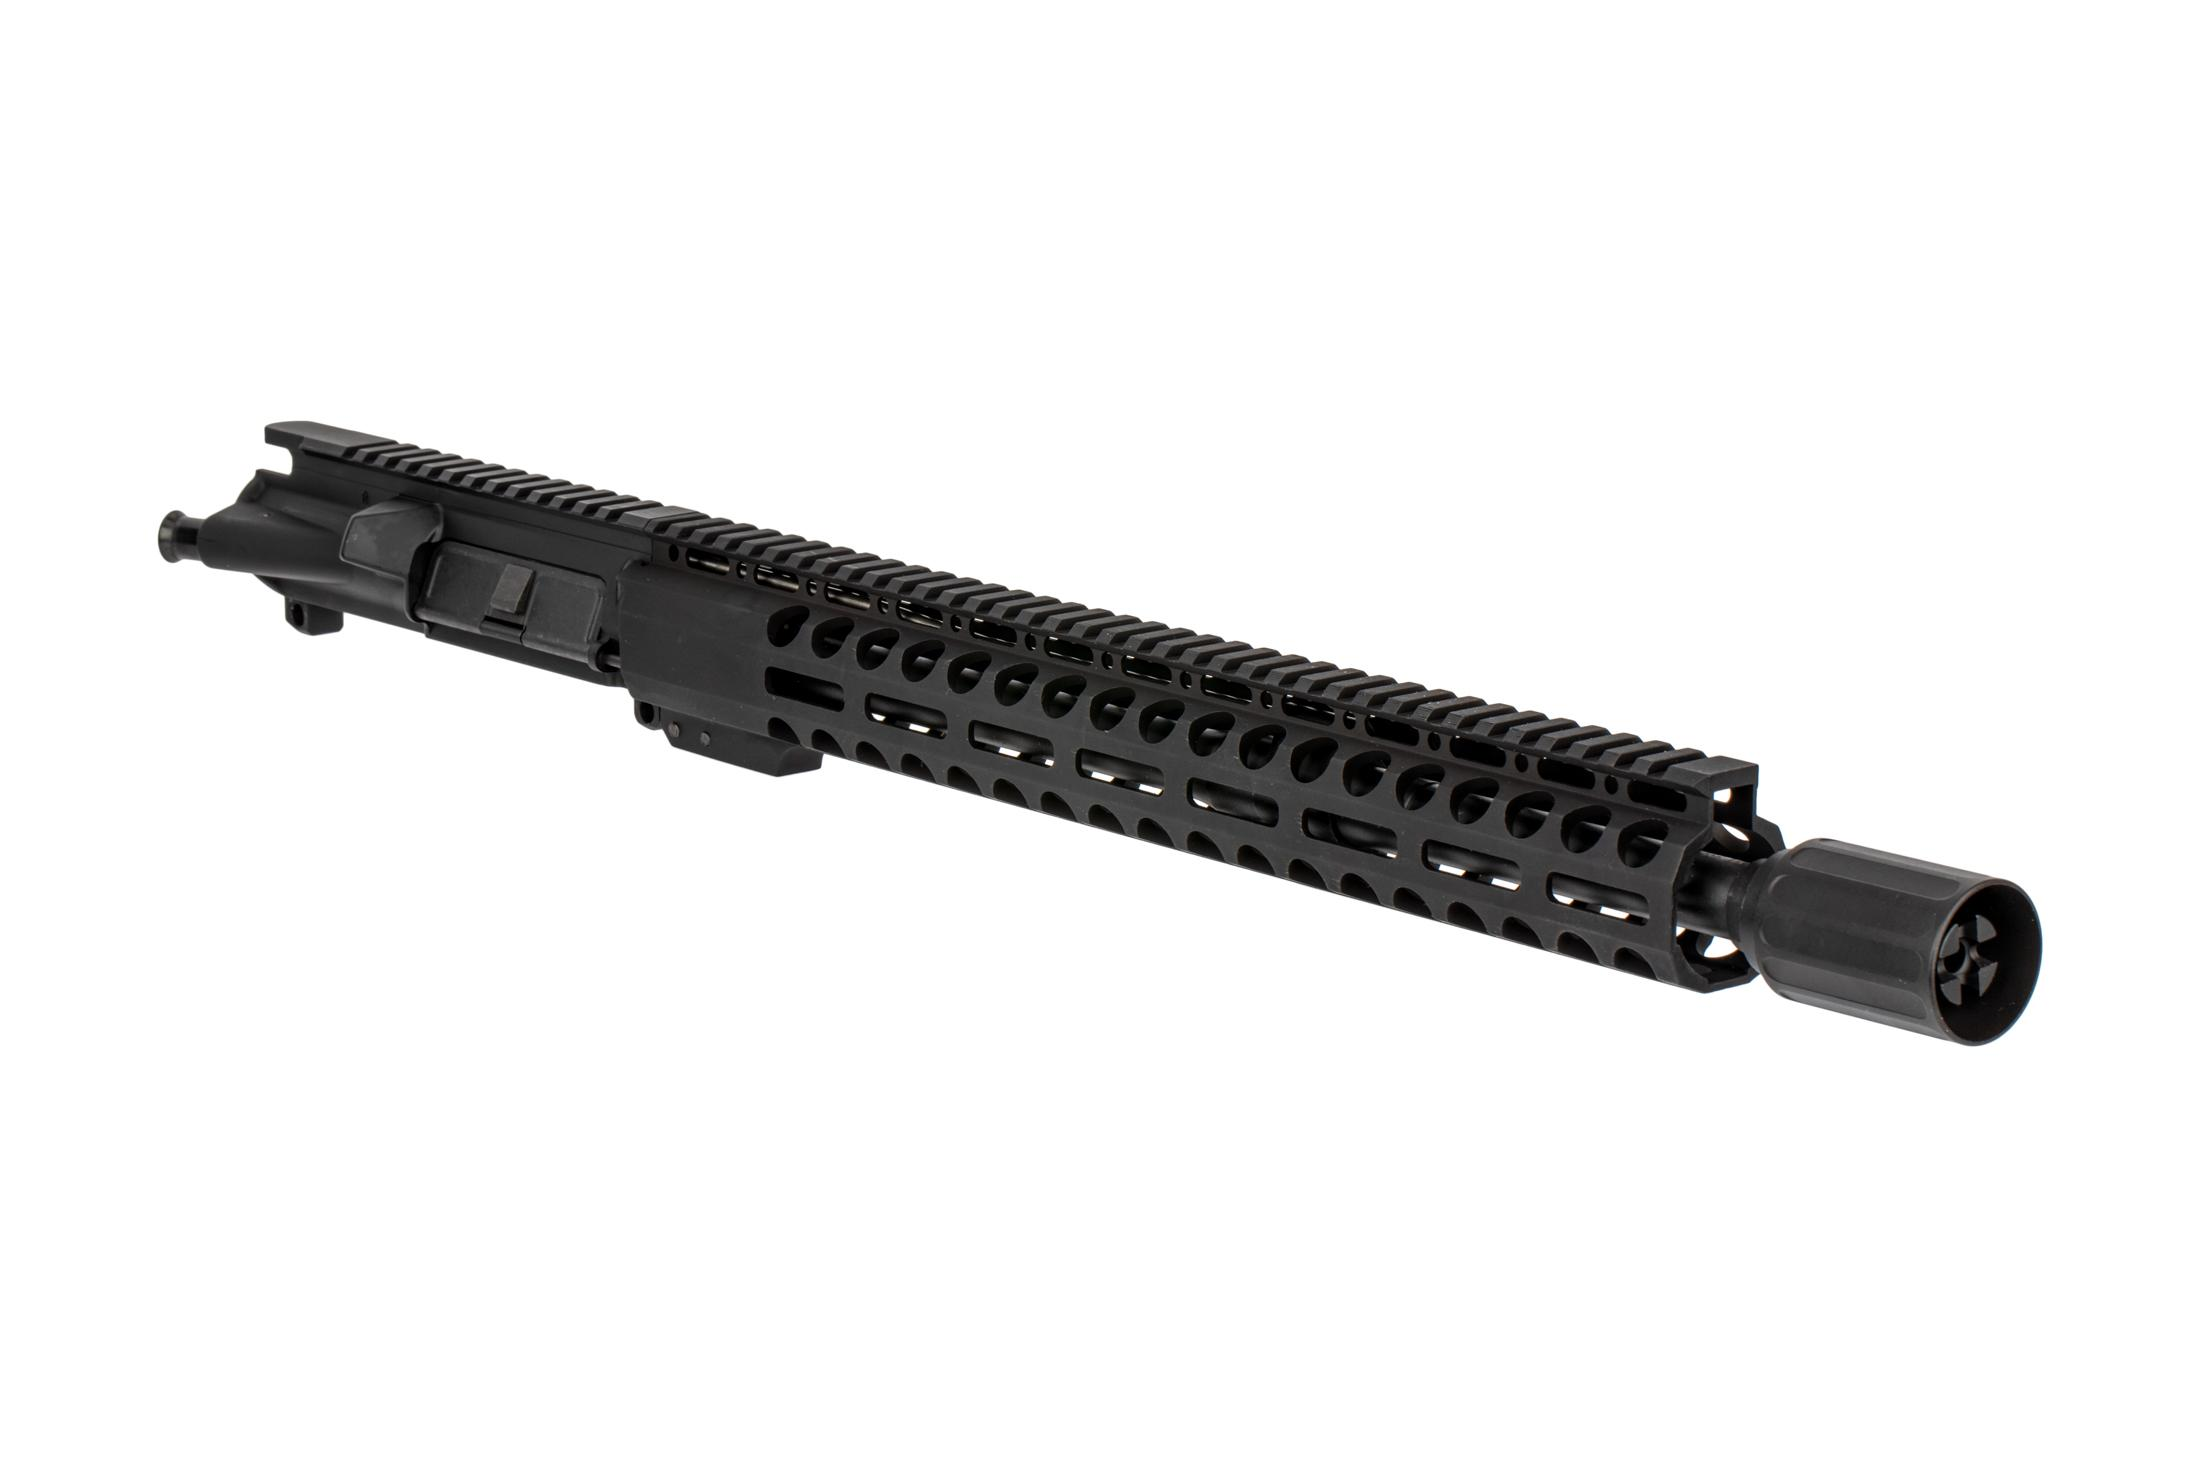 Radical Firearms 16in 5.56 NATO AR-15 barreled upper receiver with SOCOM contour barrel with 15in Primary Arms exclusive M-LOK rail